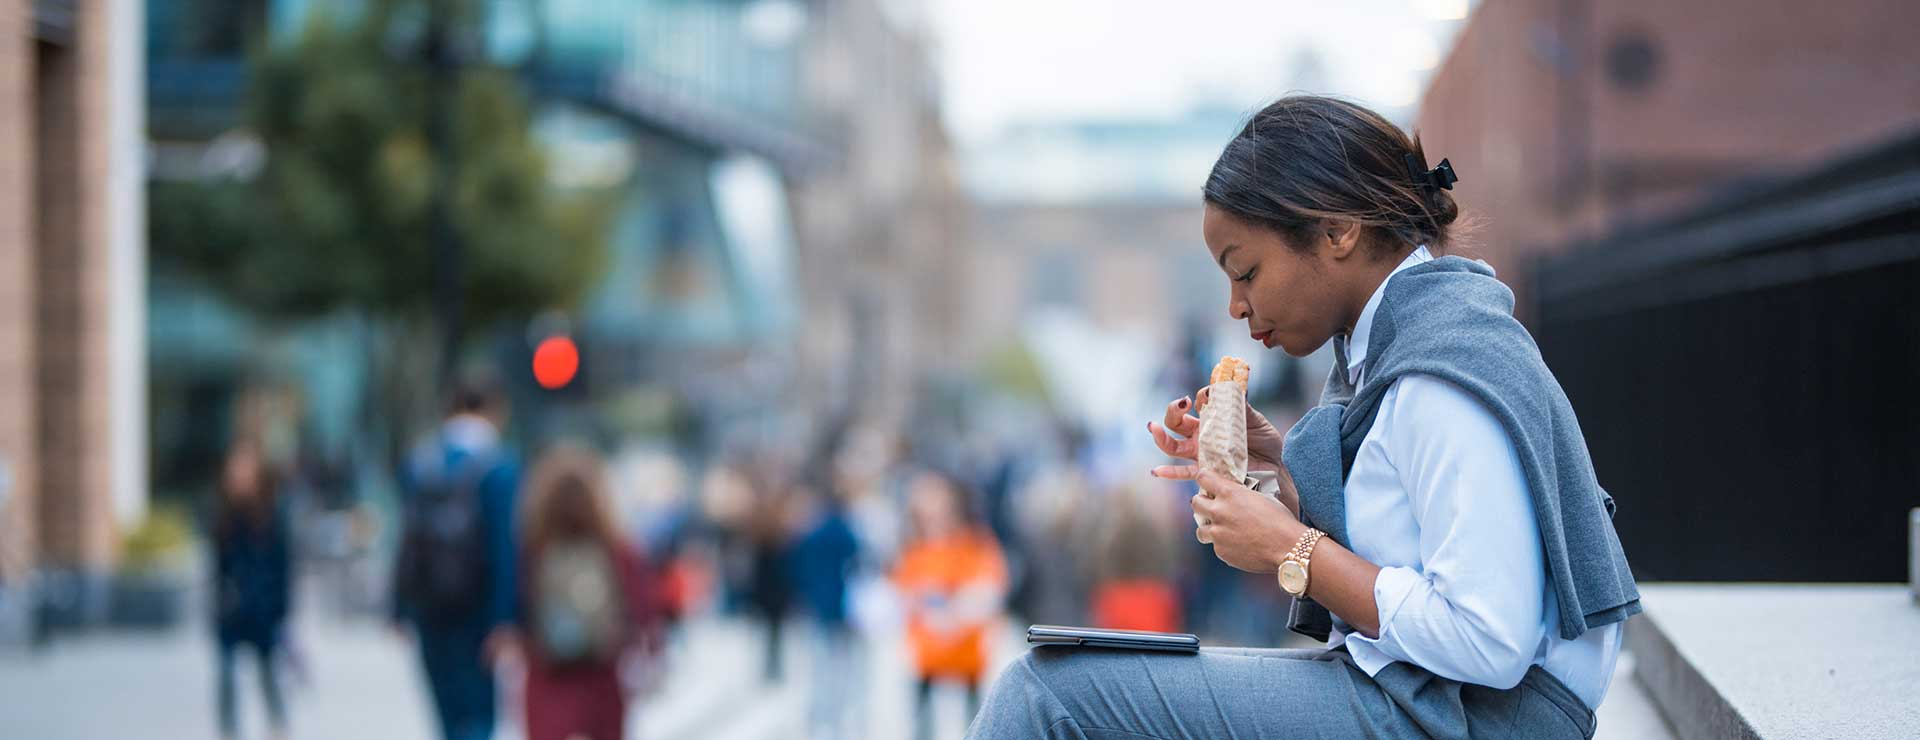 A woman sitting on the steps of a building and eating a wrap while looking at her tablet